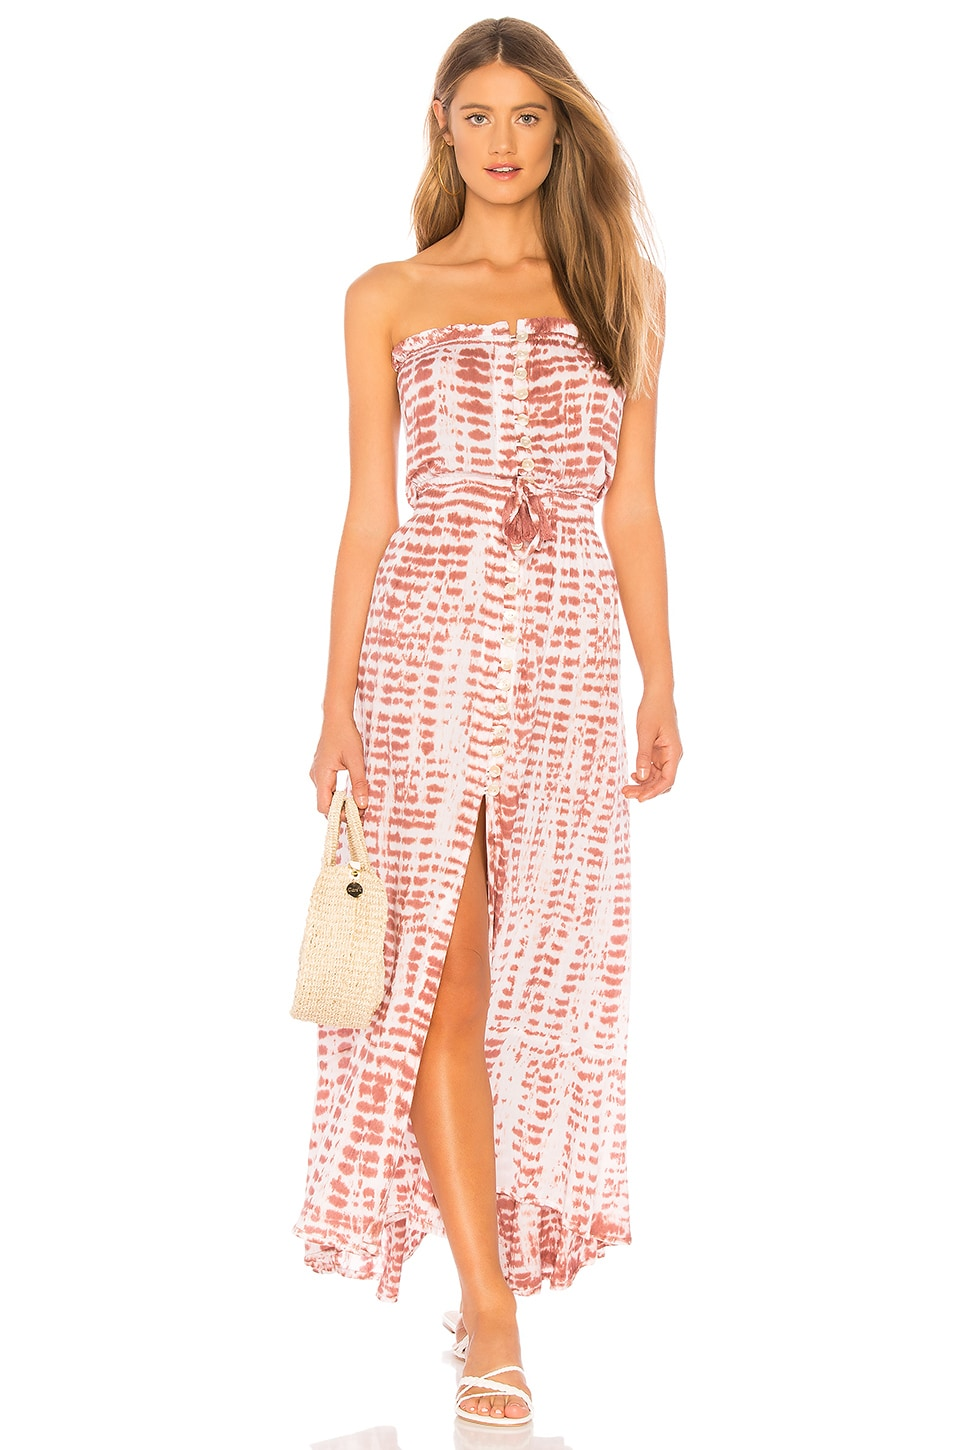 Ryden Dress             Tiare Hawaii                                                                                                       CA$ 183.49 7